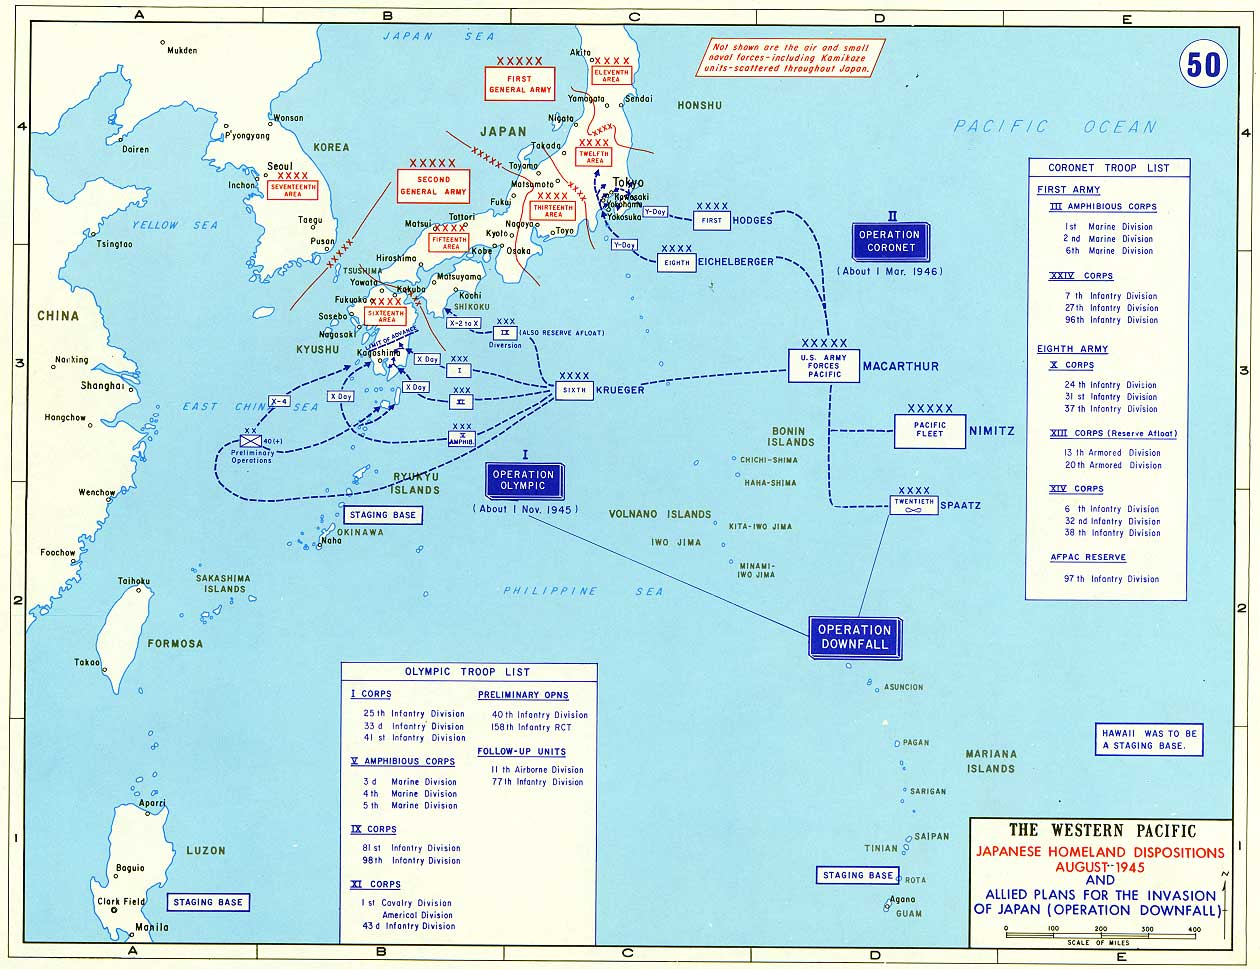 Japanese home islands invasion map operation downfall japanese home islands invasion map operation downfall american history famous historical events tragedies and triumphs publicscrutiny Gallery